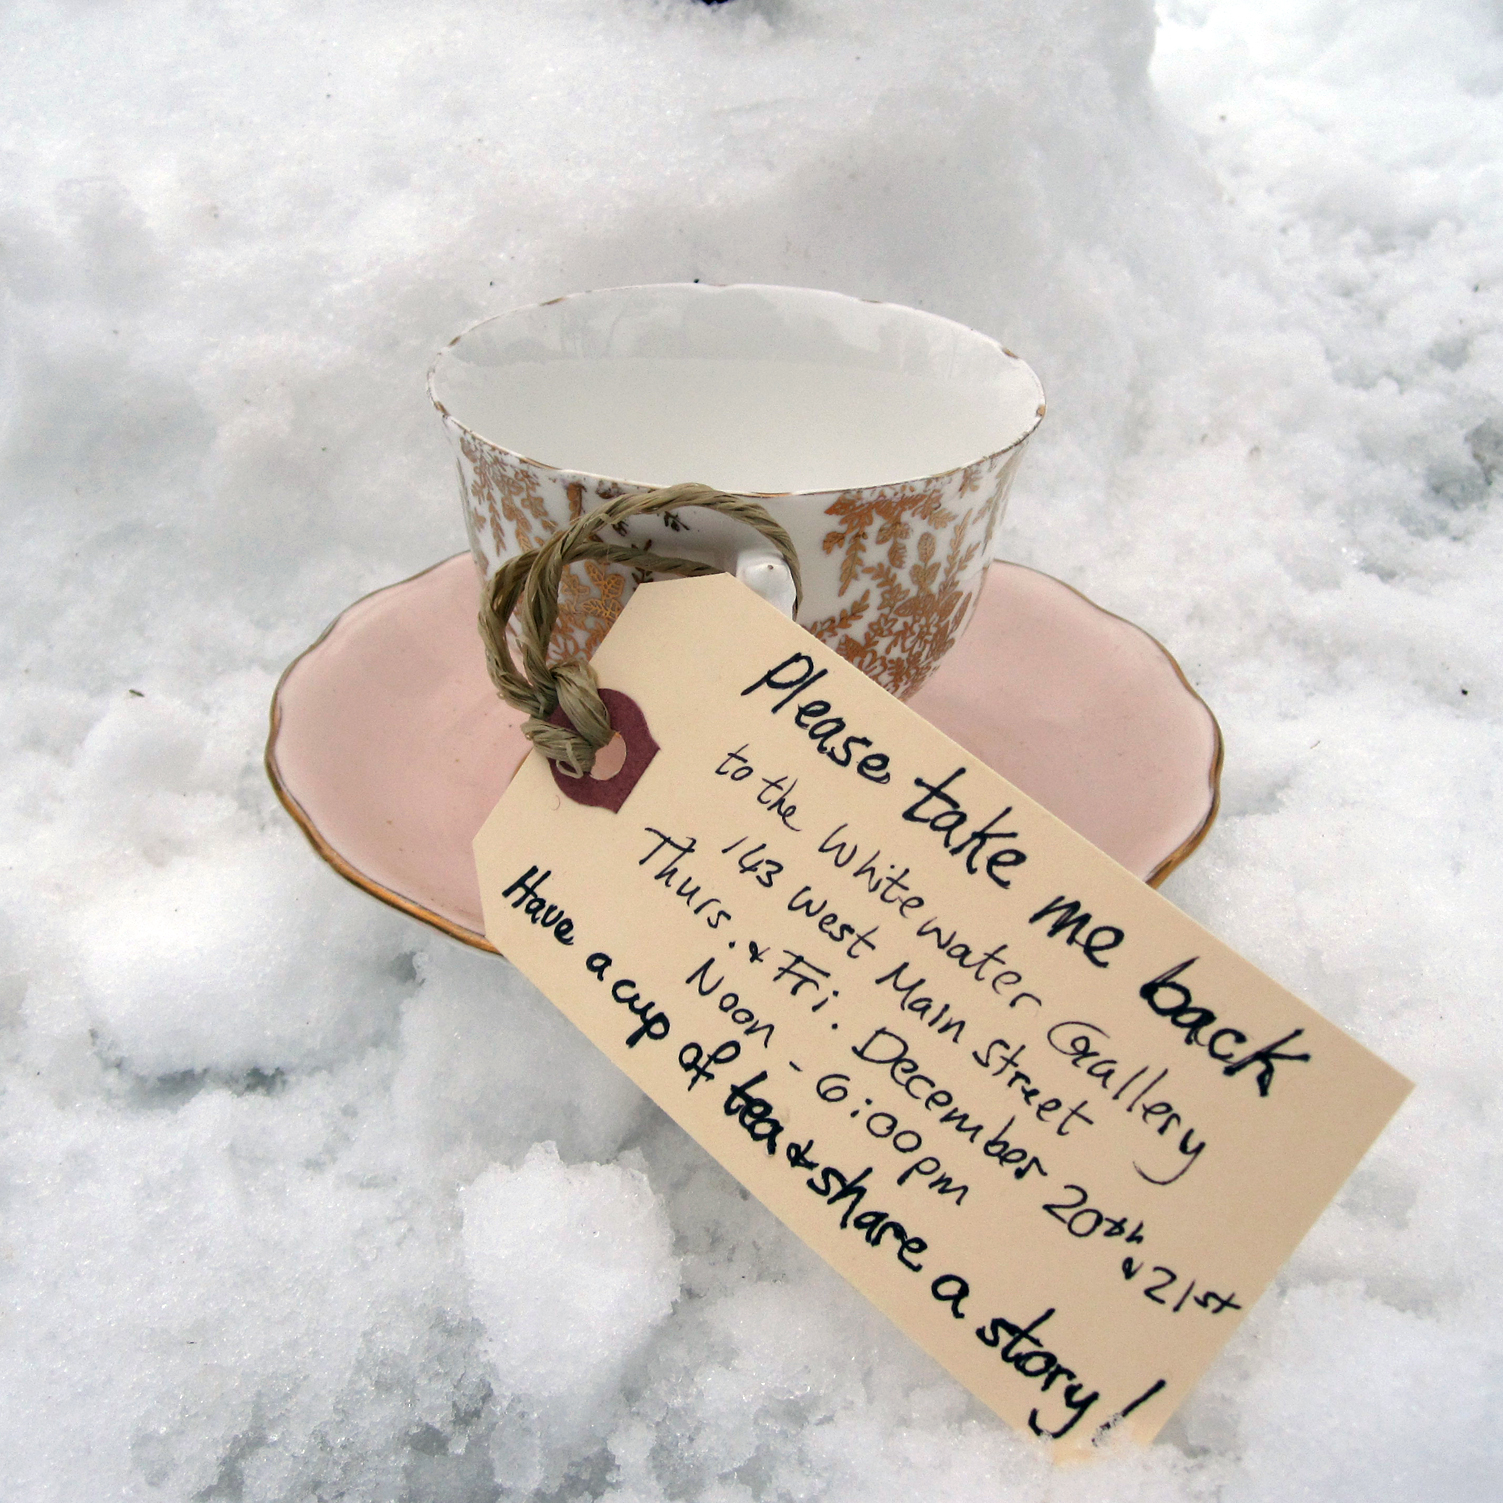 Tea Cups are being left around town as a way to draft in unsuspecting participants for a community art creation event.